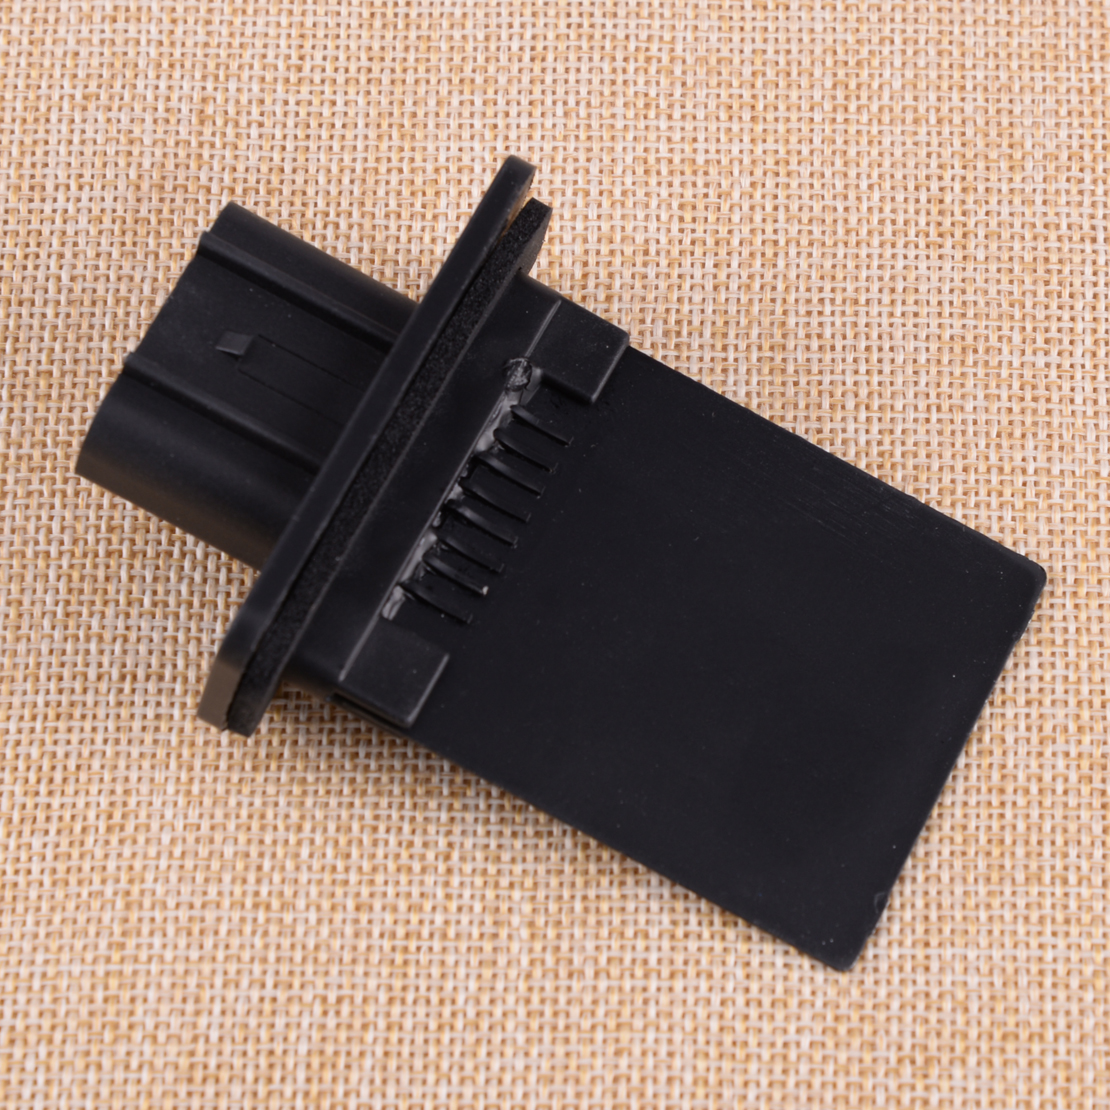 HVAC Front Heater Blower Motor Resistor for Ford Escape F-150 Fiesta 973-444